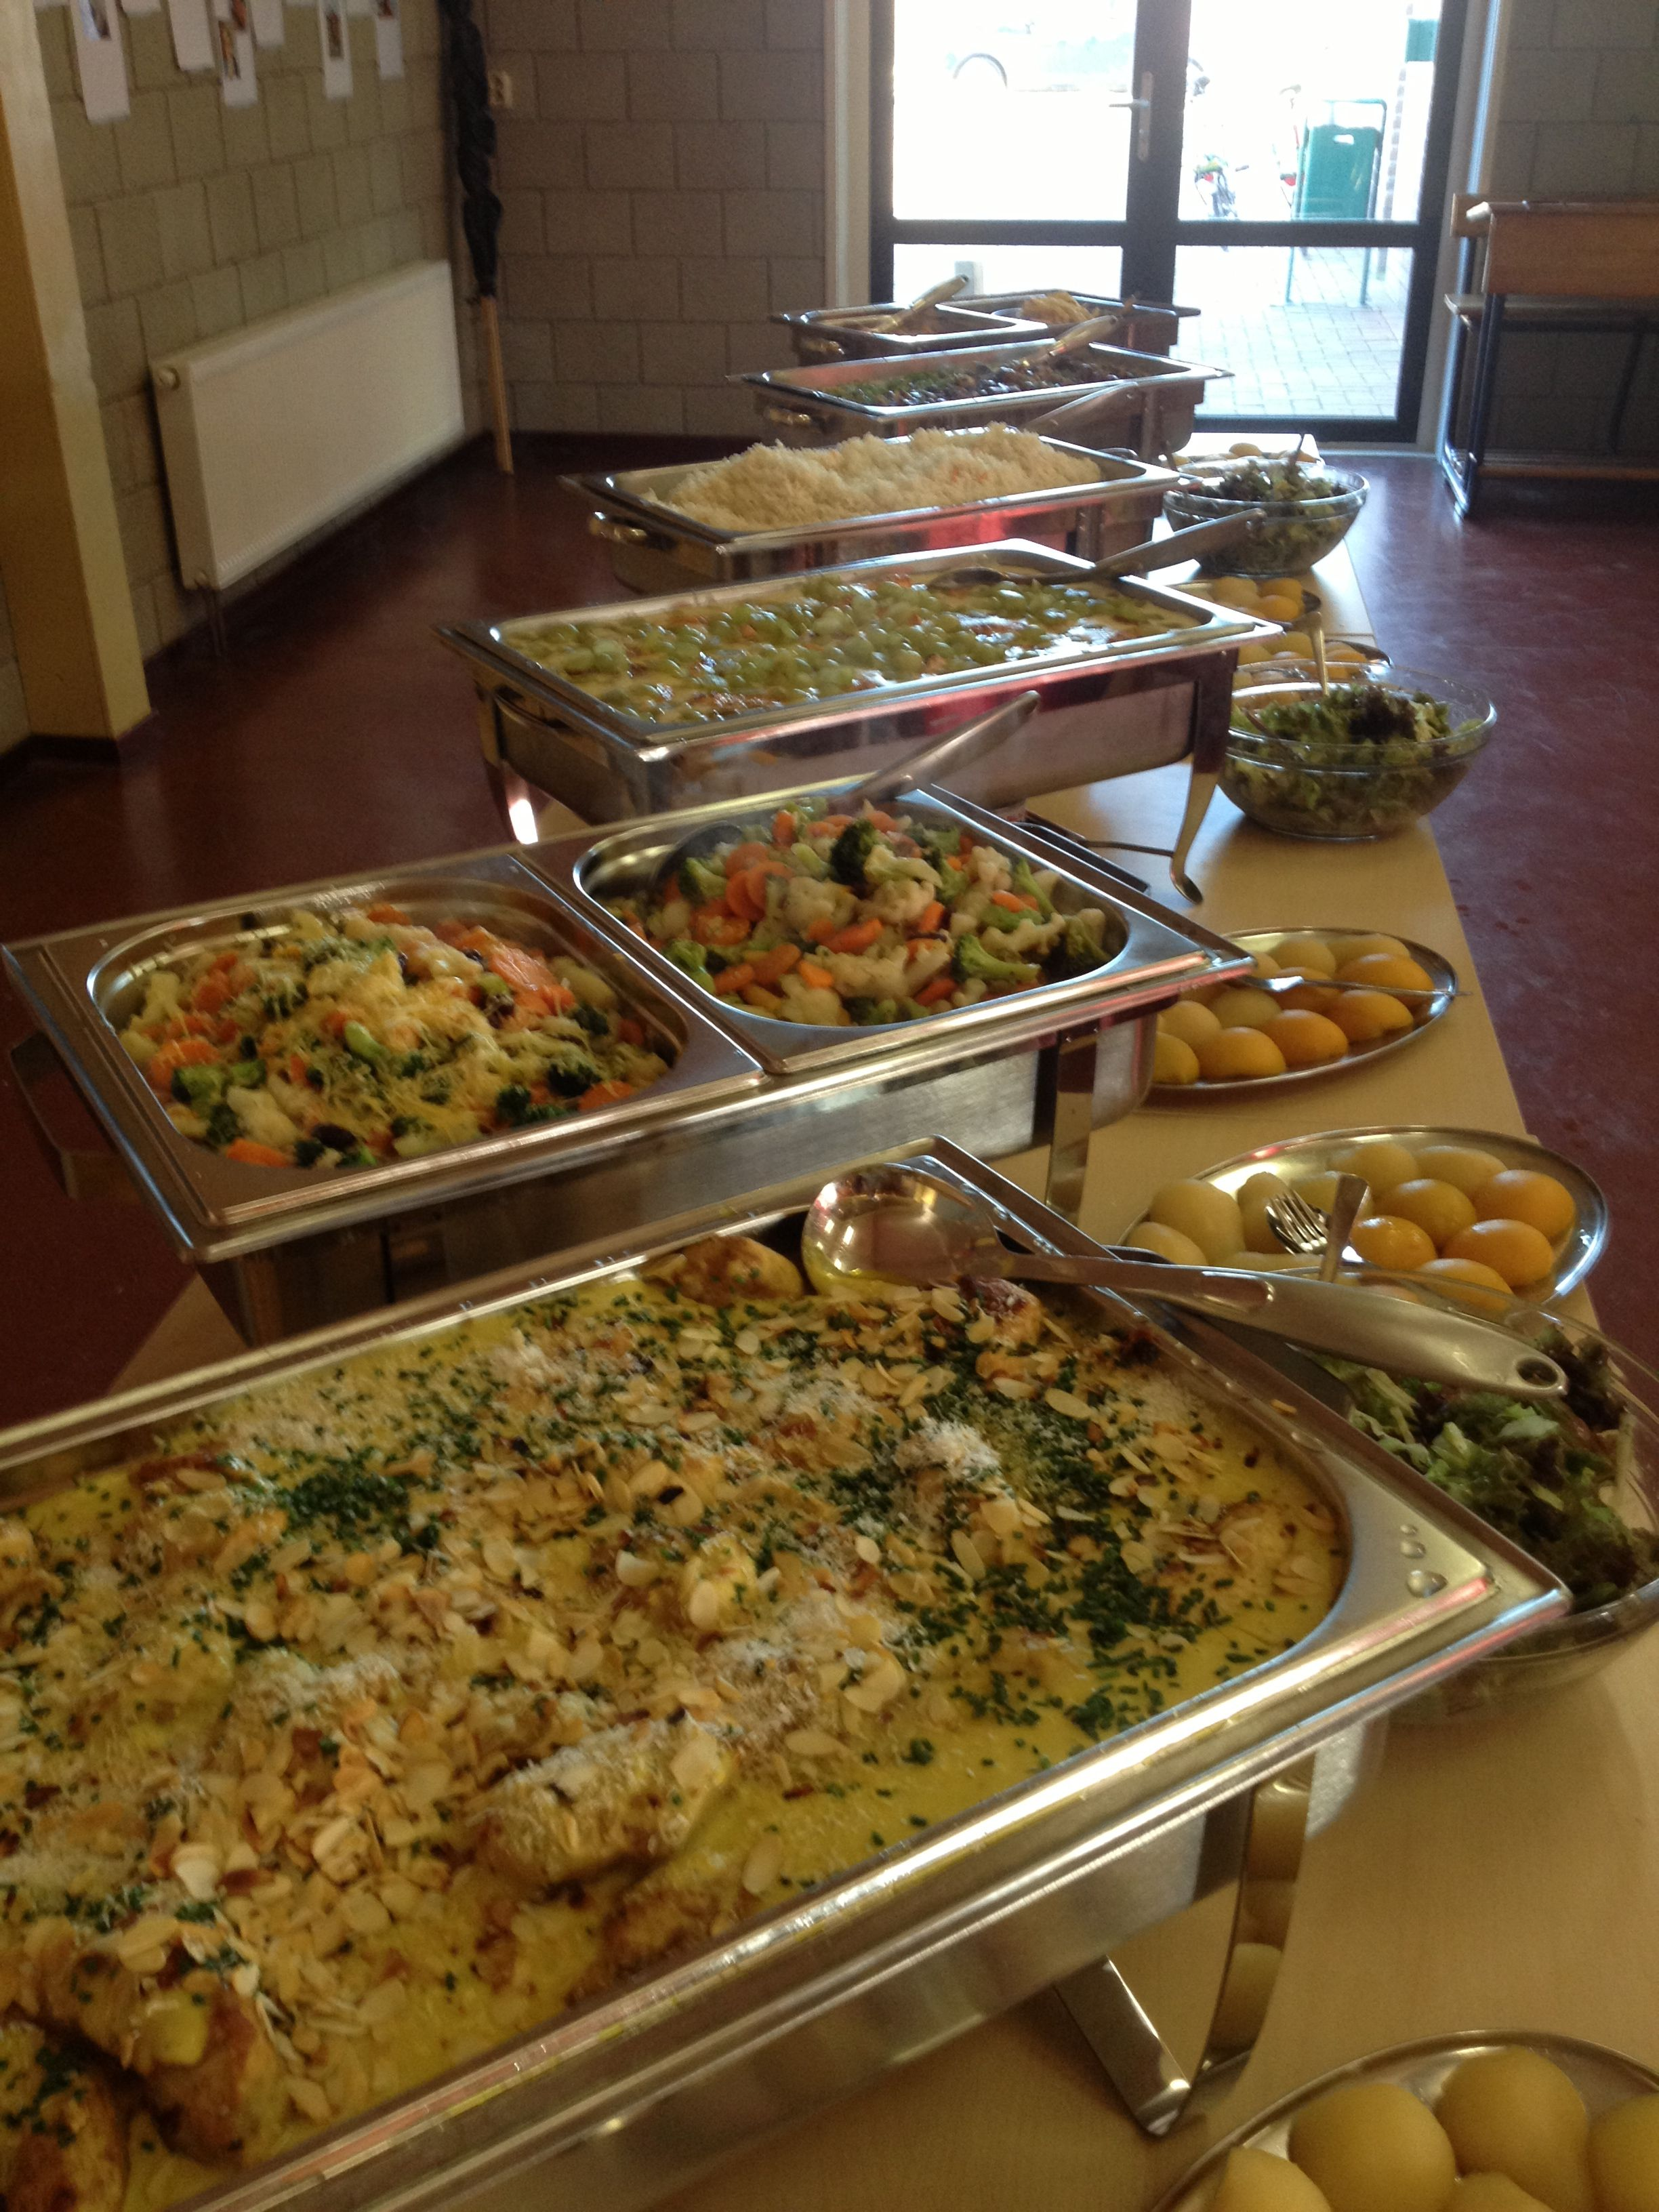 Catering Buffet Set Up Diagram Fishbone In Software Testing Warm The Day Pinterest Frühstück And